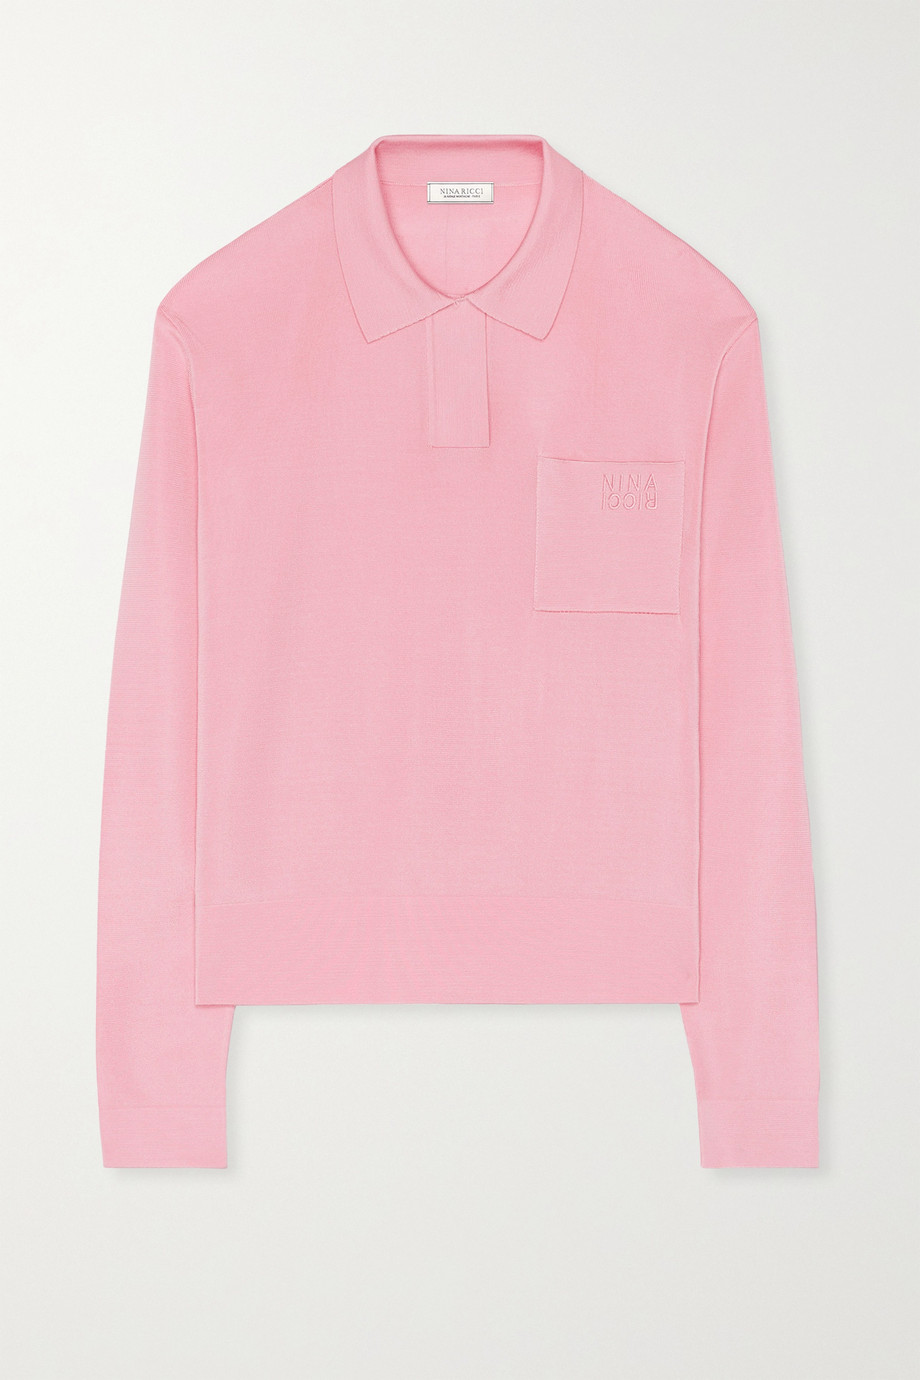 Nina Ricci Stretch-knit sweater